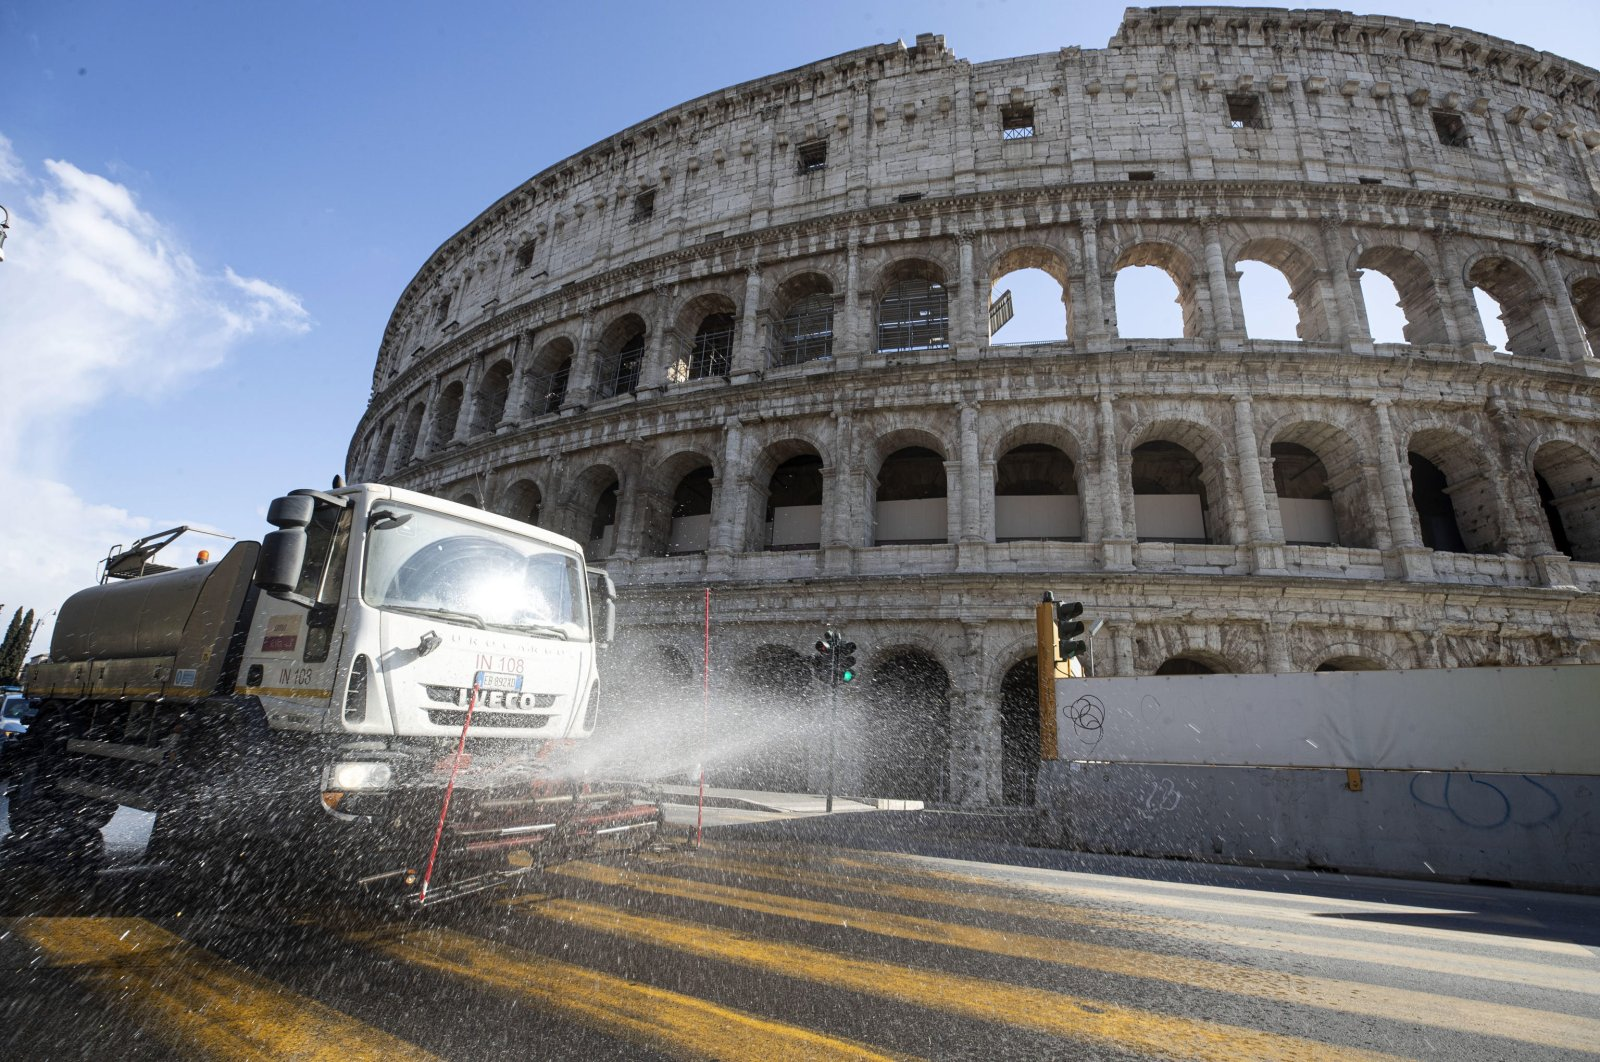 Disinfection operations on the streets due to the Coronavirus emergency in Rome, Italy, 24 March 2020. (EPA Photo)